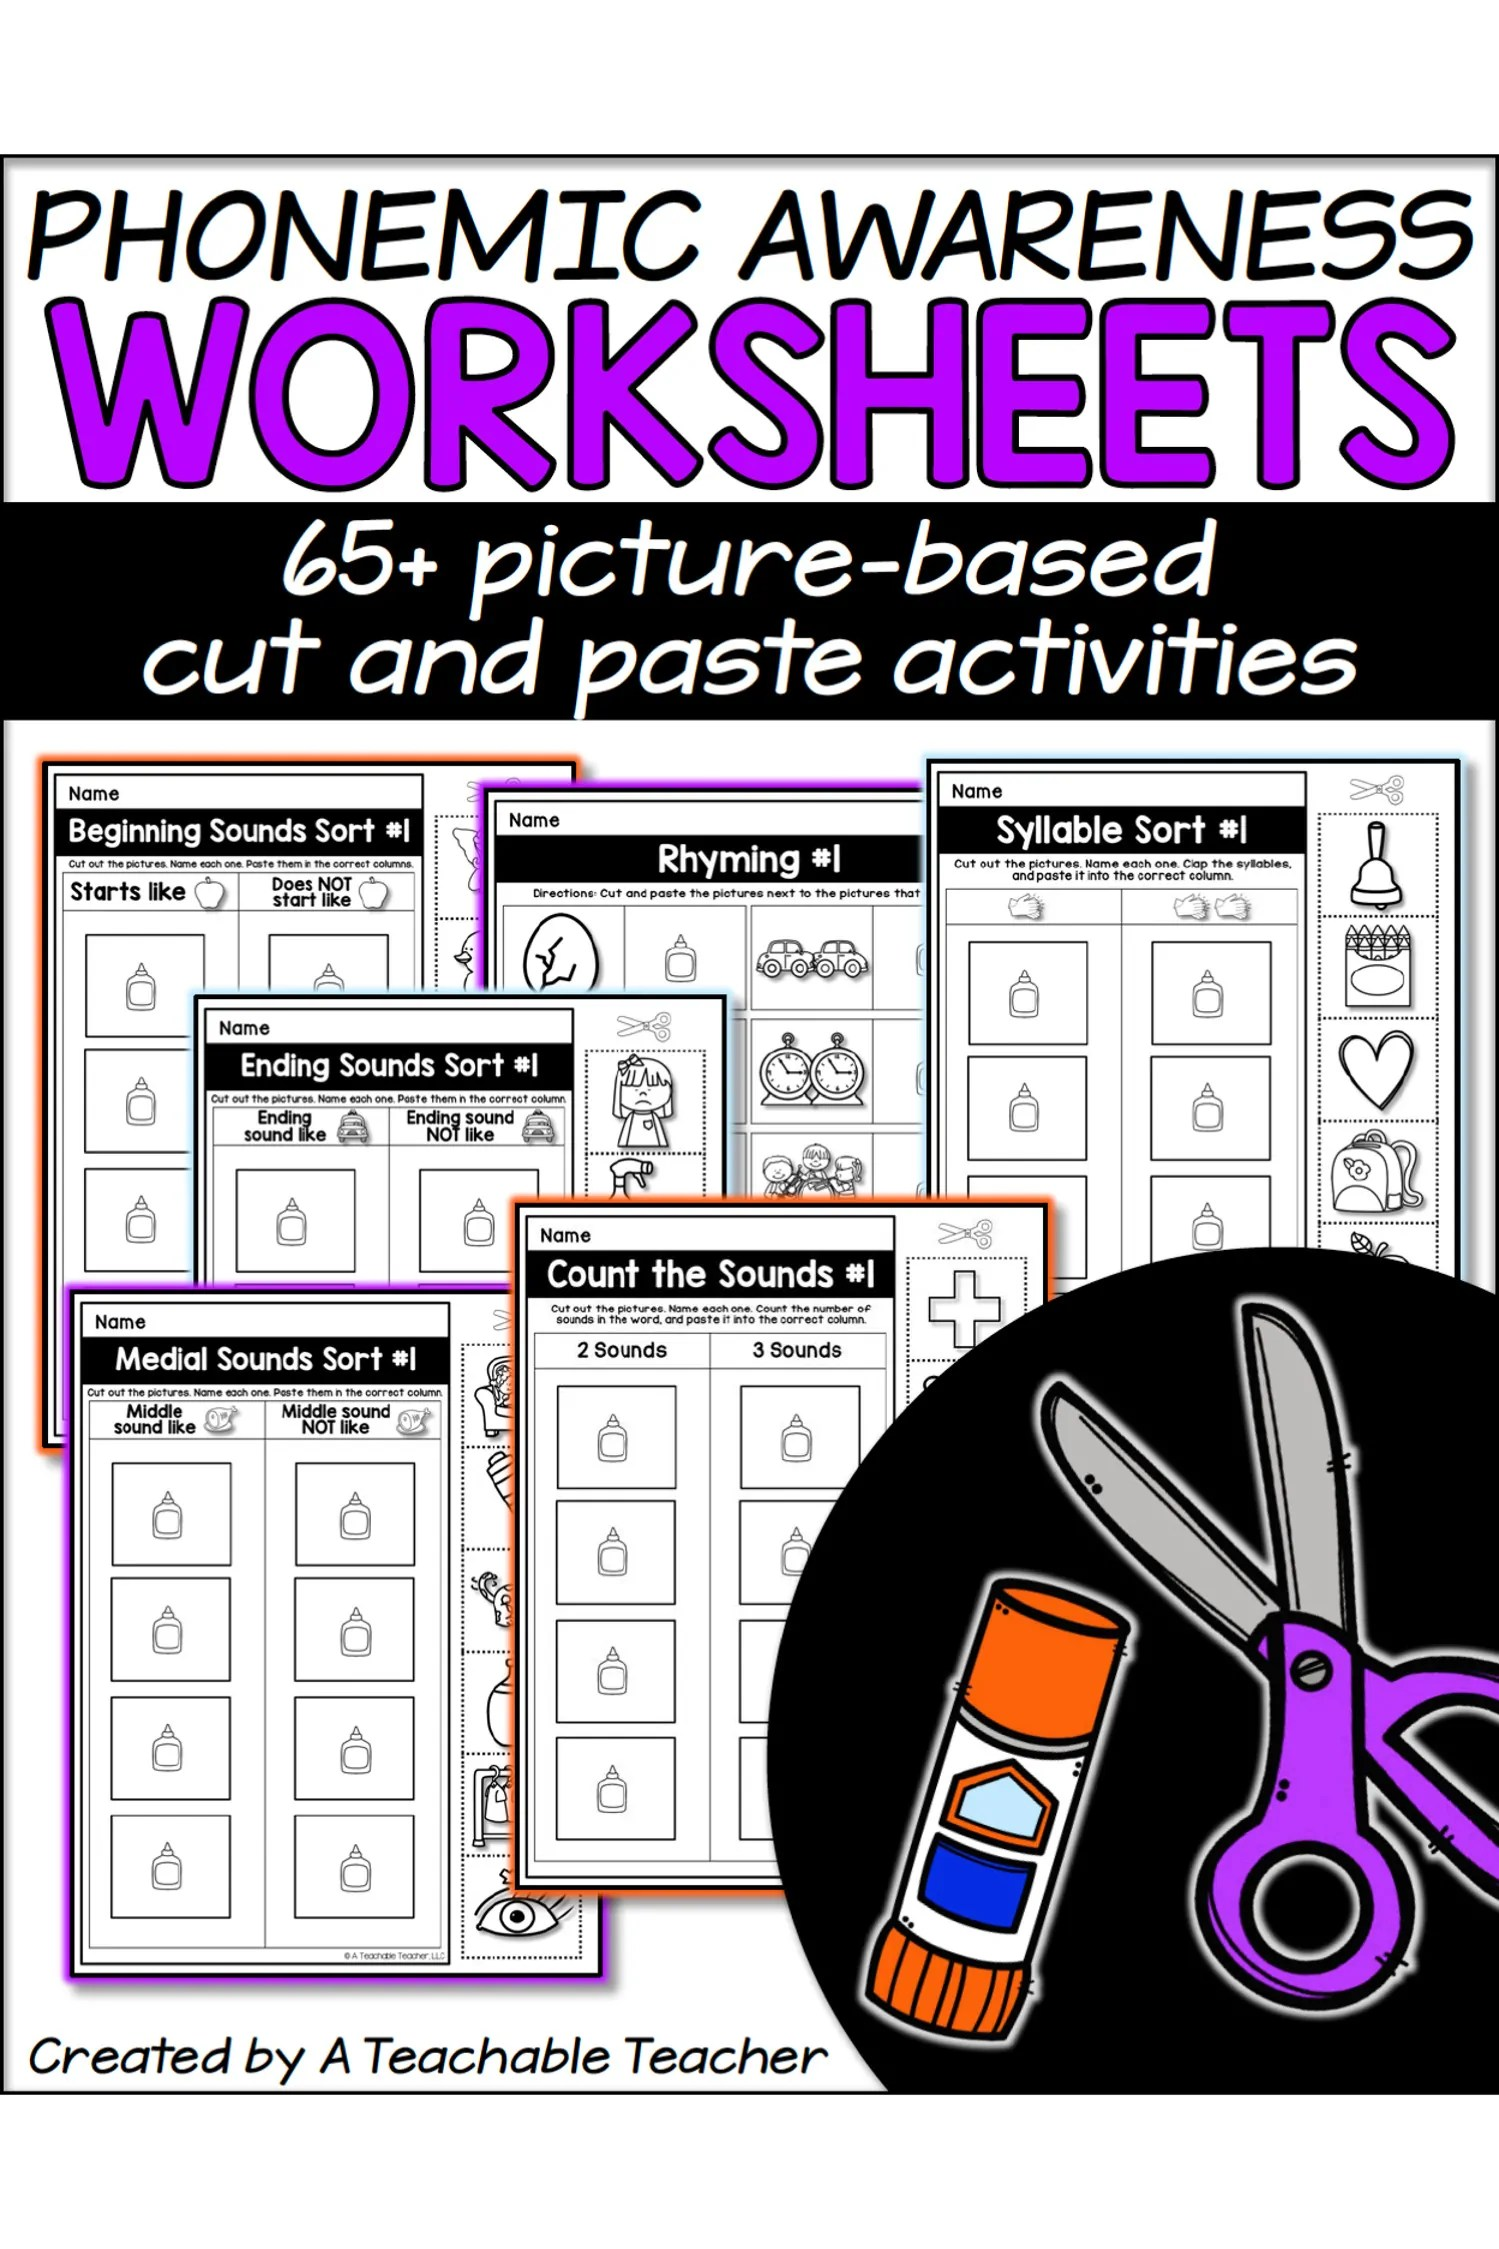 hight resolution of Phonemic Awareness Worksheets - A Teachable Teacher